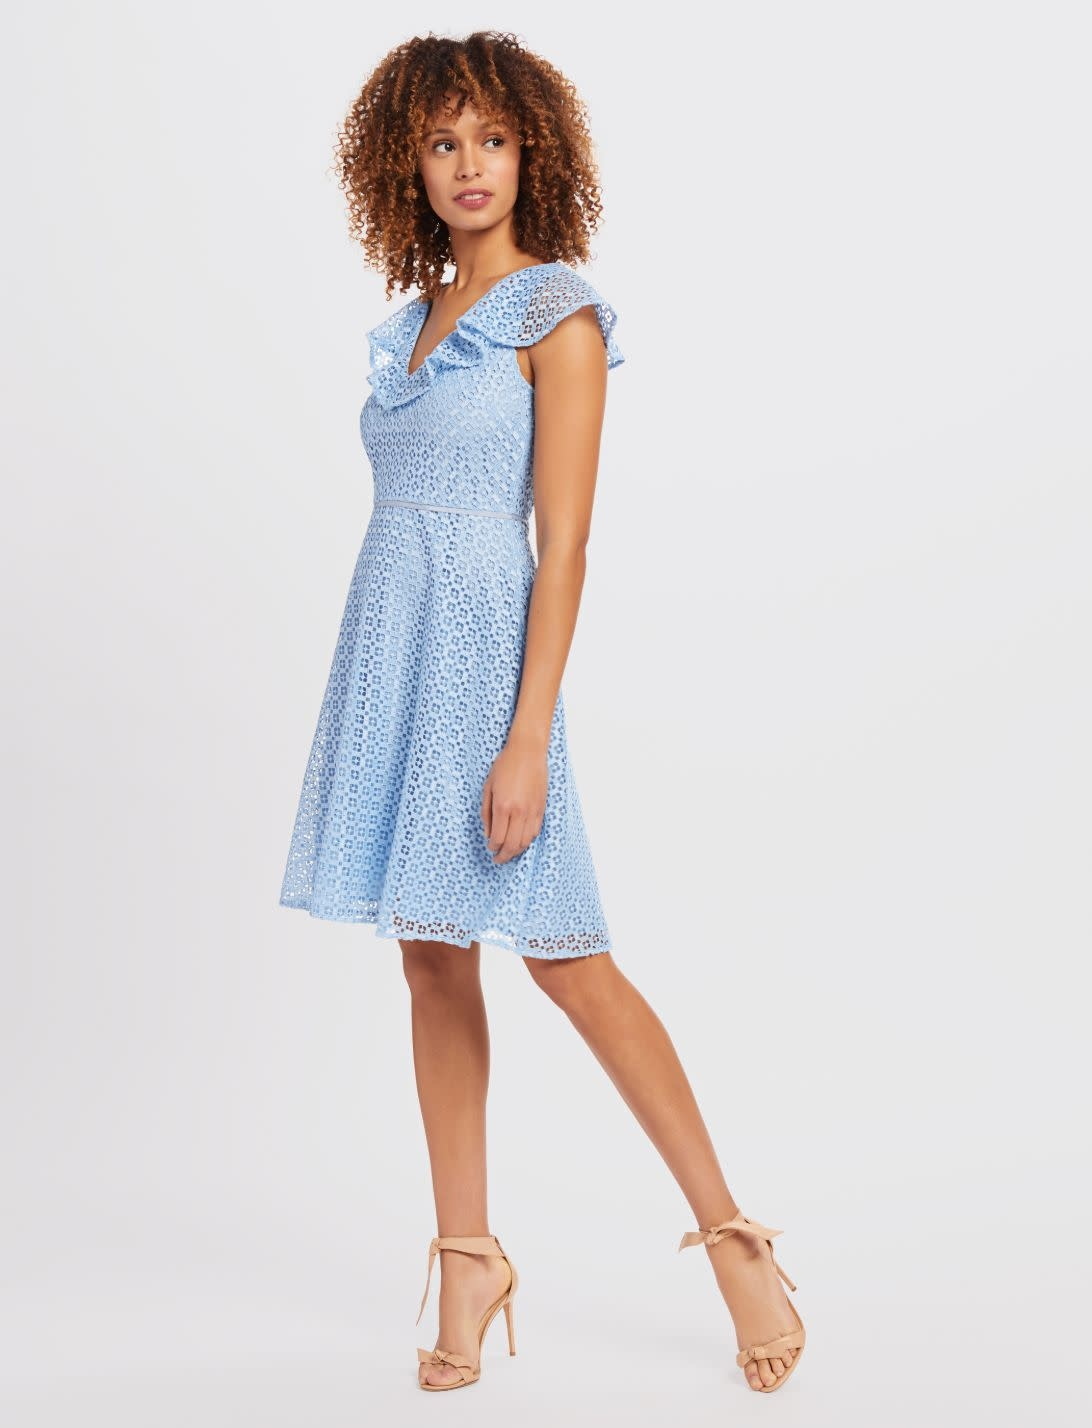 Lattice A-line Dress Light Blue